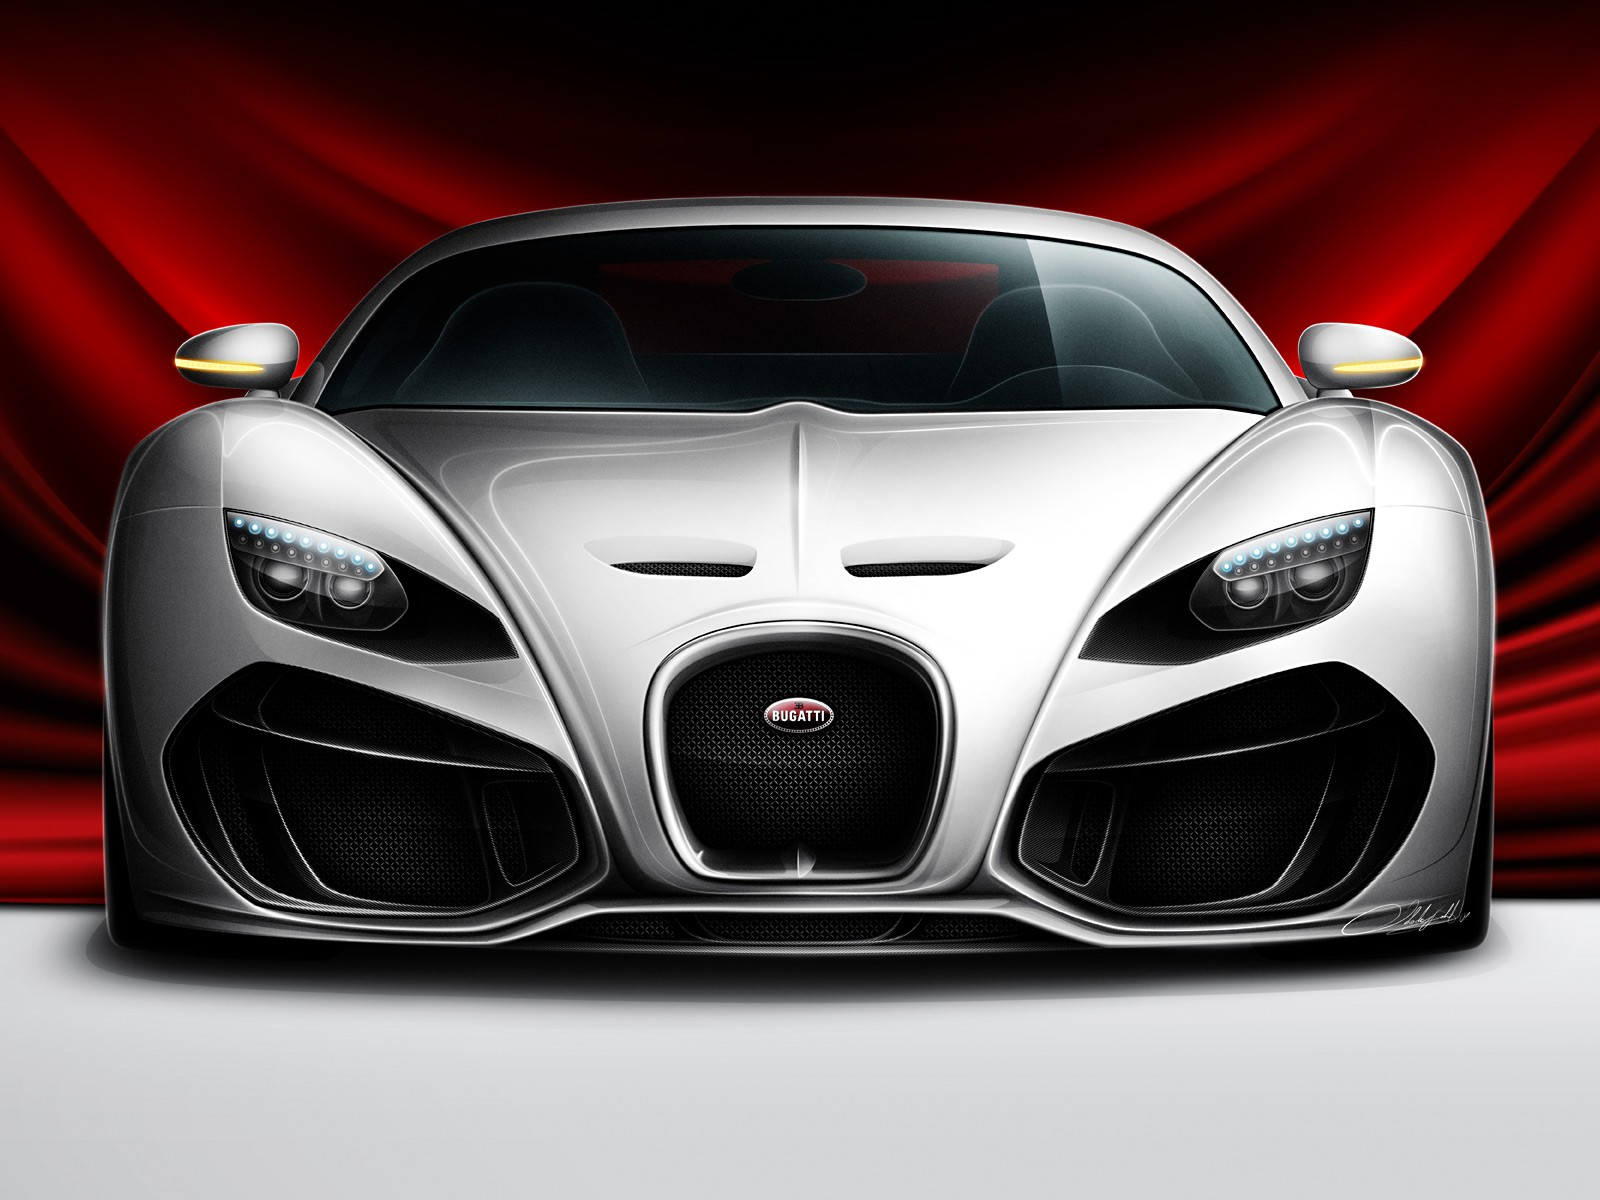 Cars HD Wallpapers Bugatti Venom Concept Car HD Wall 1600x1200